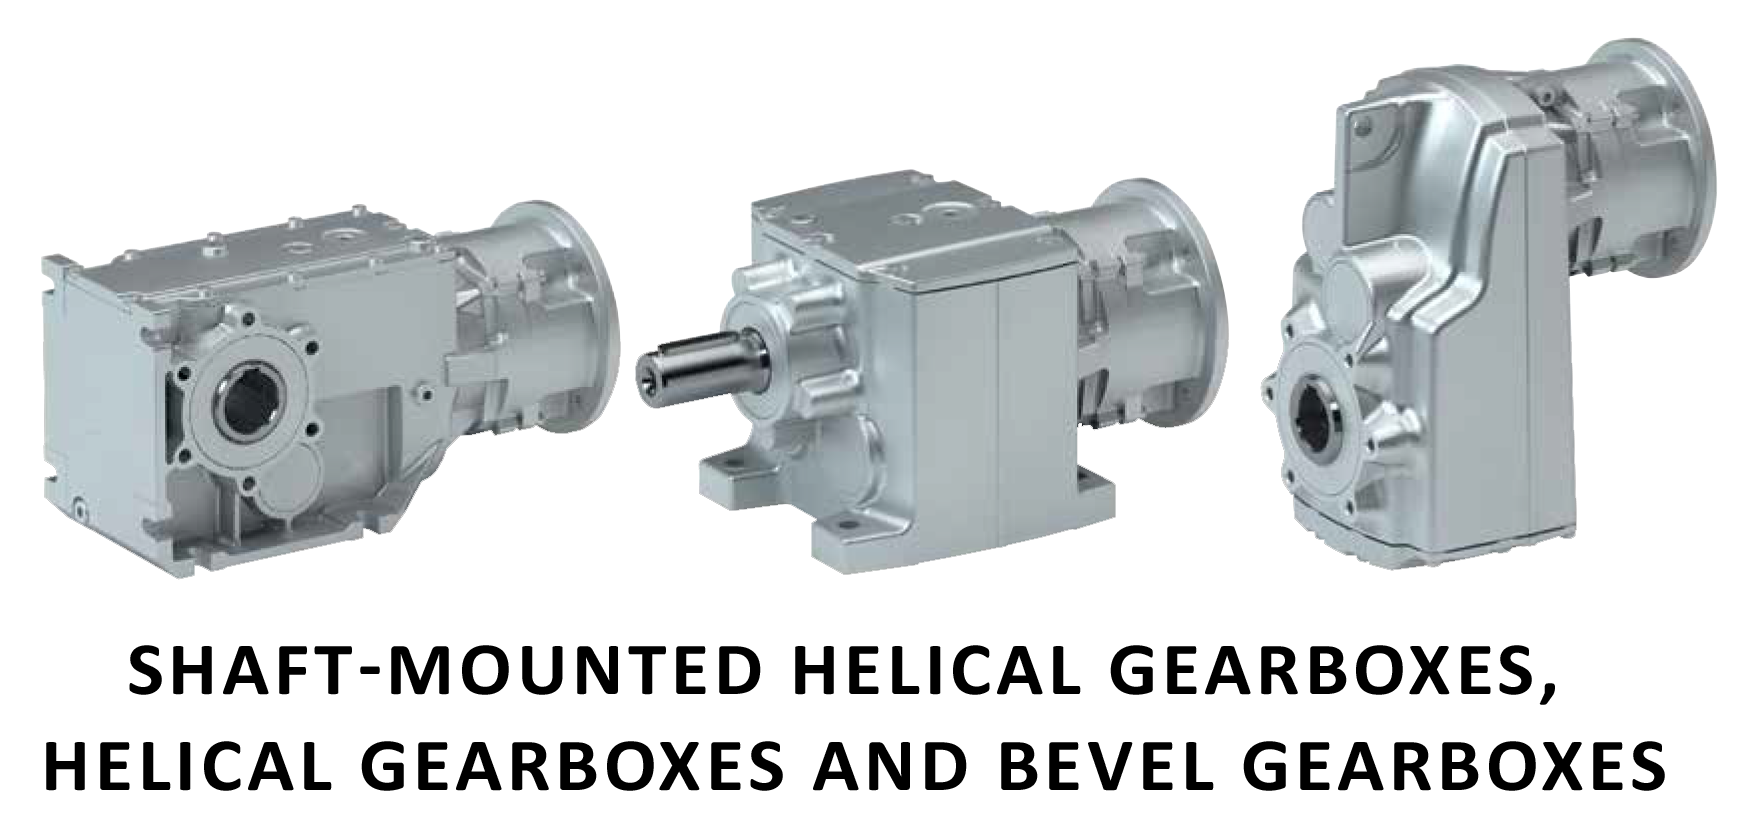 Shaft-mounted helical gearboxes, helical gearboxes and bevel gearboxes